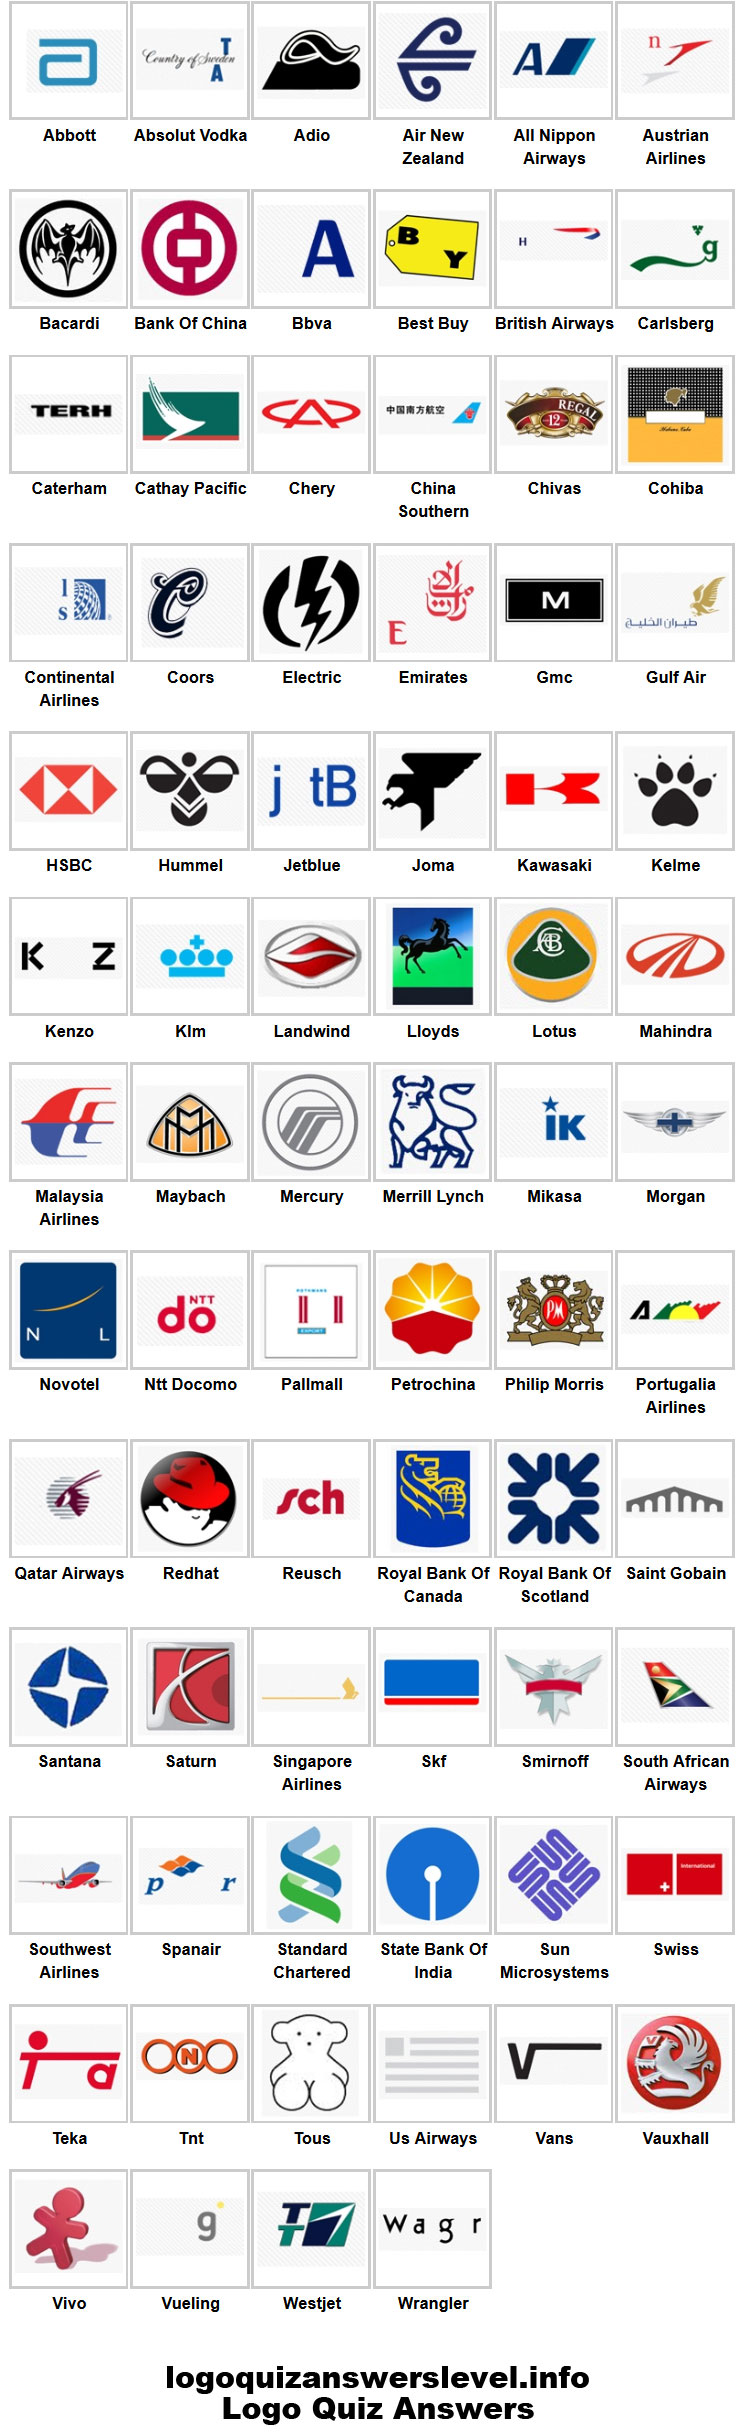 Company Logos Game Answers Logo quiz answers, Logo quiz